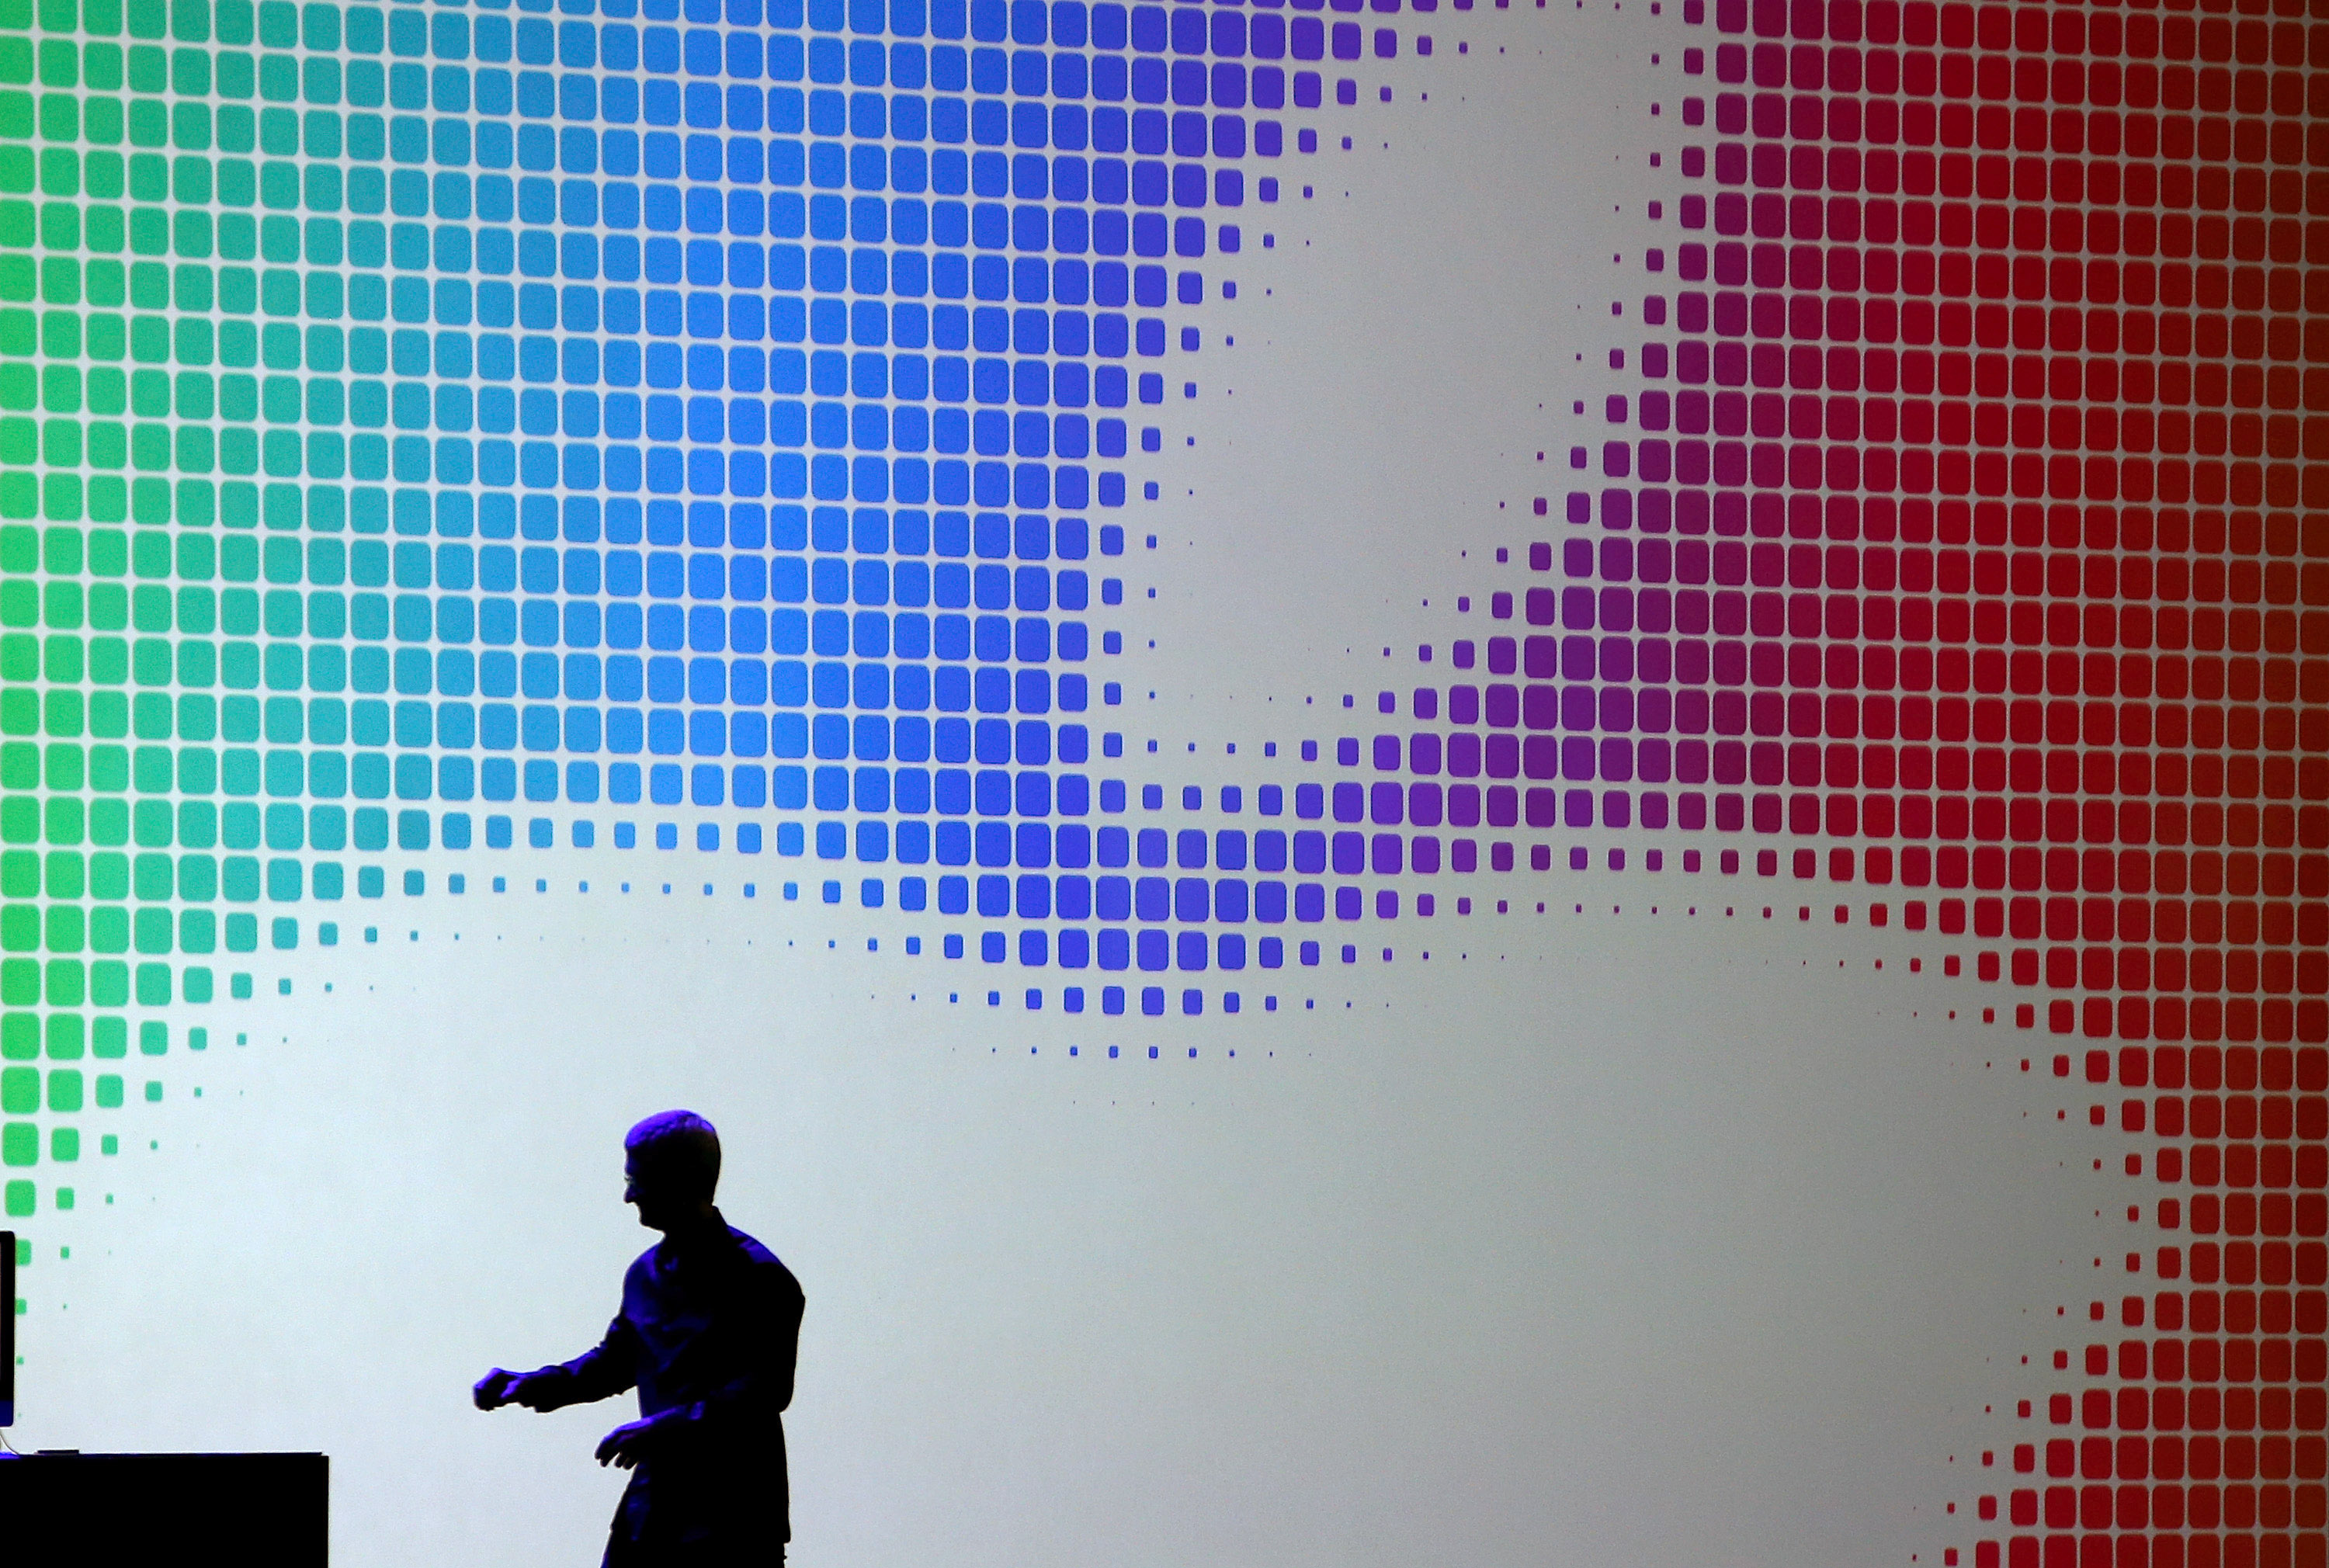 Apple CEO Tim Cook walks off stage after speaking during the Apple Worldwide Developers Conference at the Moscone West center on June 2, 2014 in San Francisco, California.